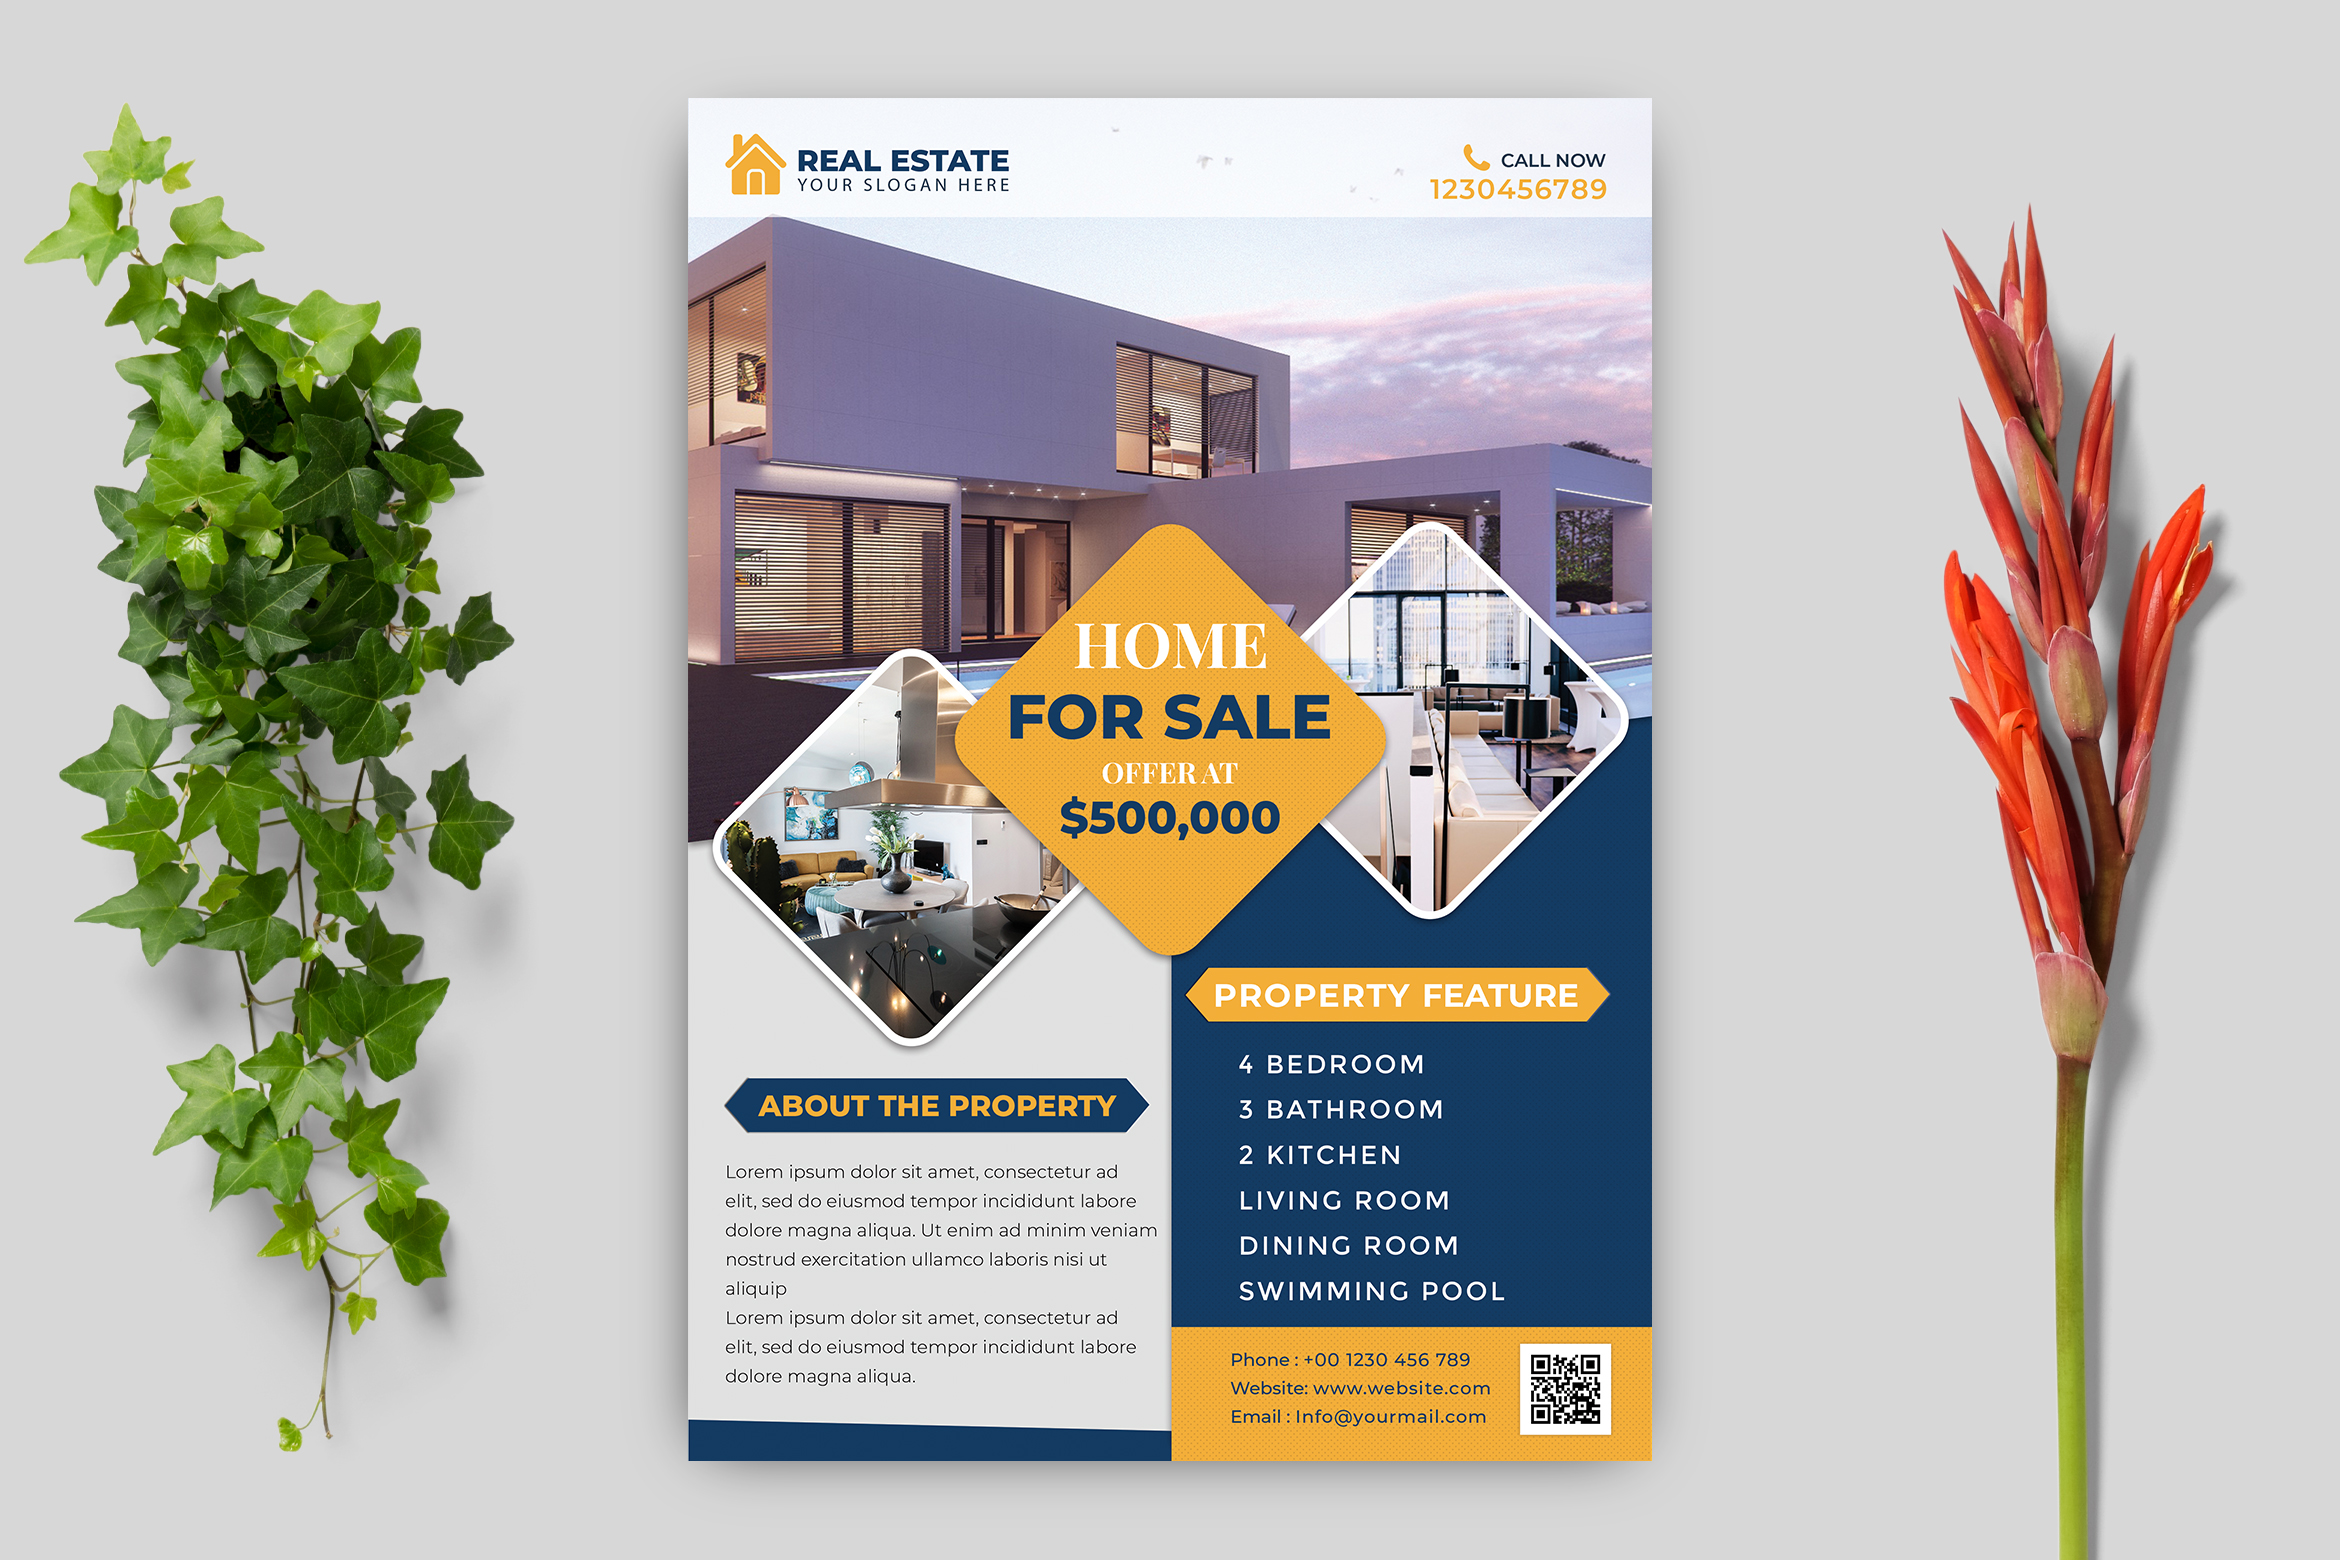 Download Free Real Estate Flyer Template Graphic By Goku4501 Creative Fabrica for Cricut Explore, Silhouette and other cutting machines.